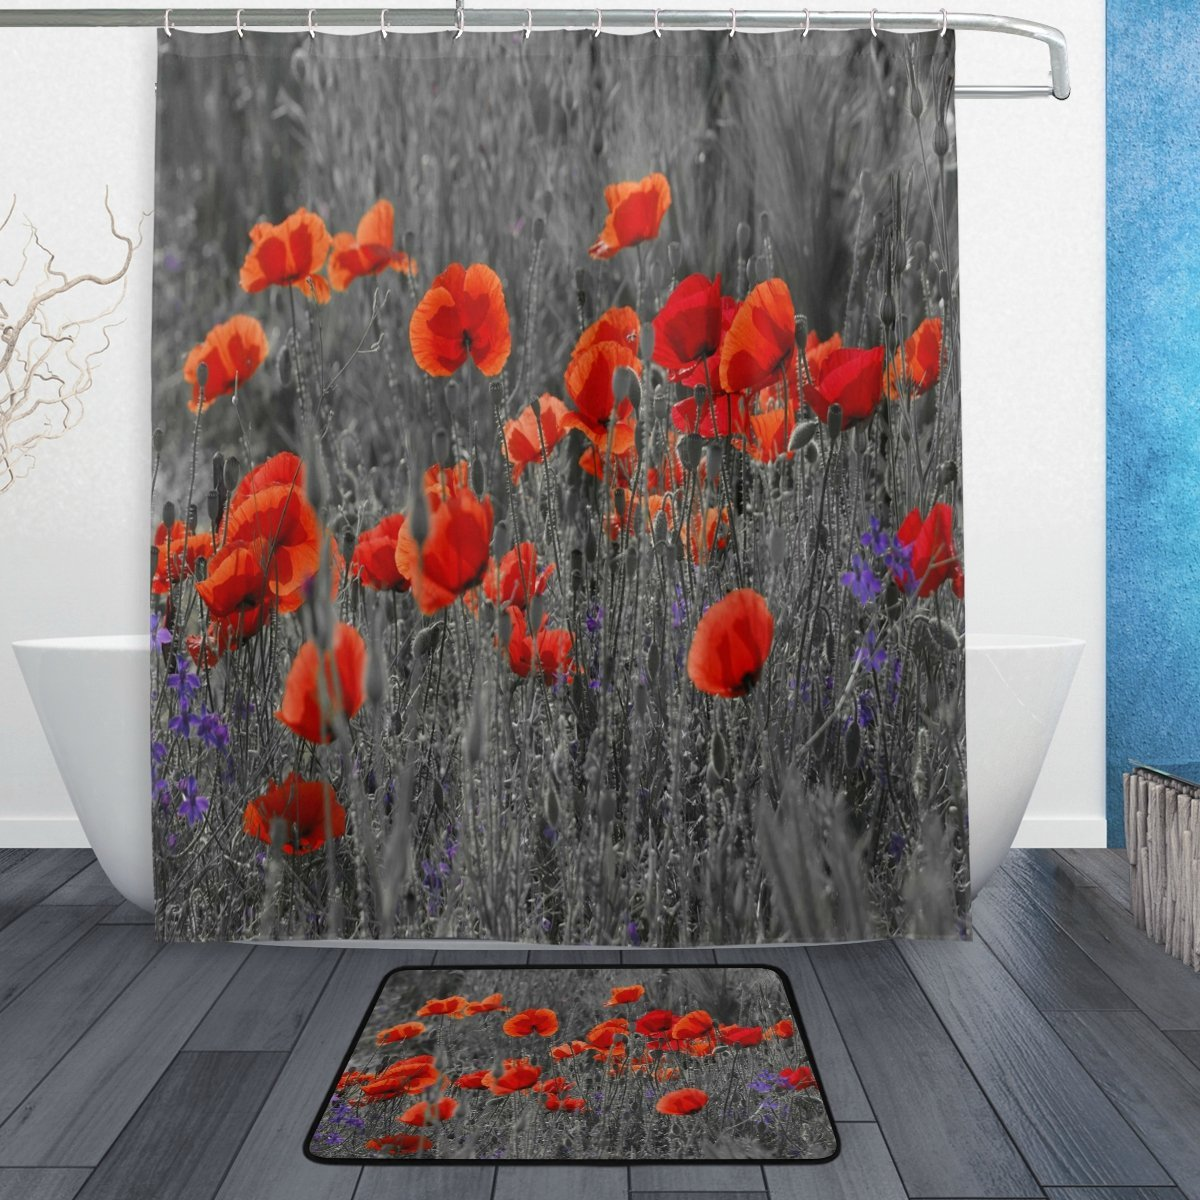 Rose Poppy Shower Curtain And Mat Set Flower Floral Waterproof Polyester Bathroom